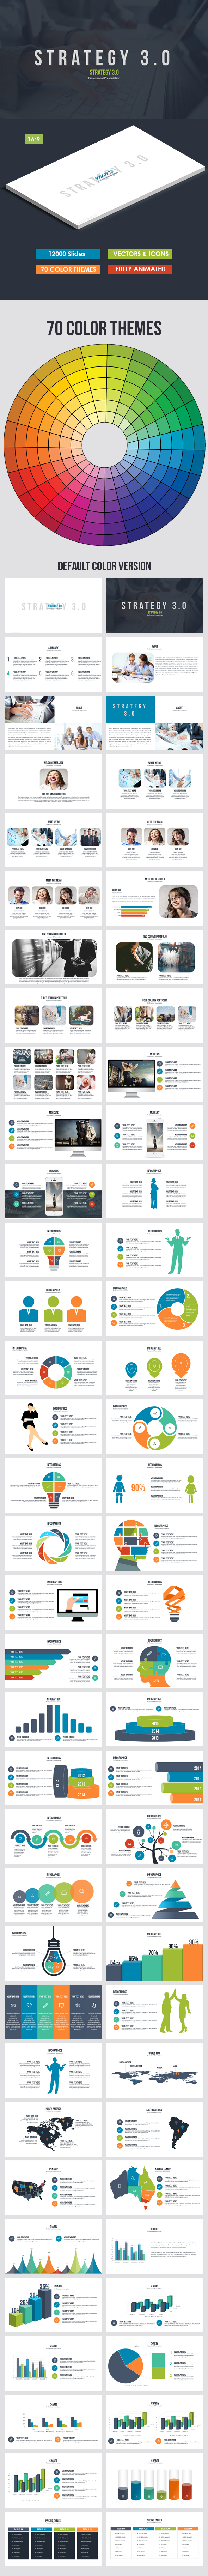 Strategy 3.0 Keynote Presentation Template - Business Keynote Templates